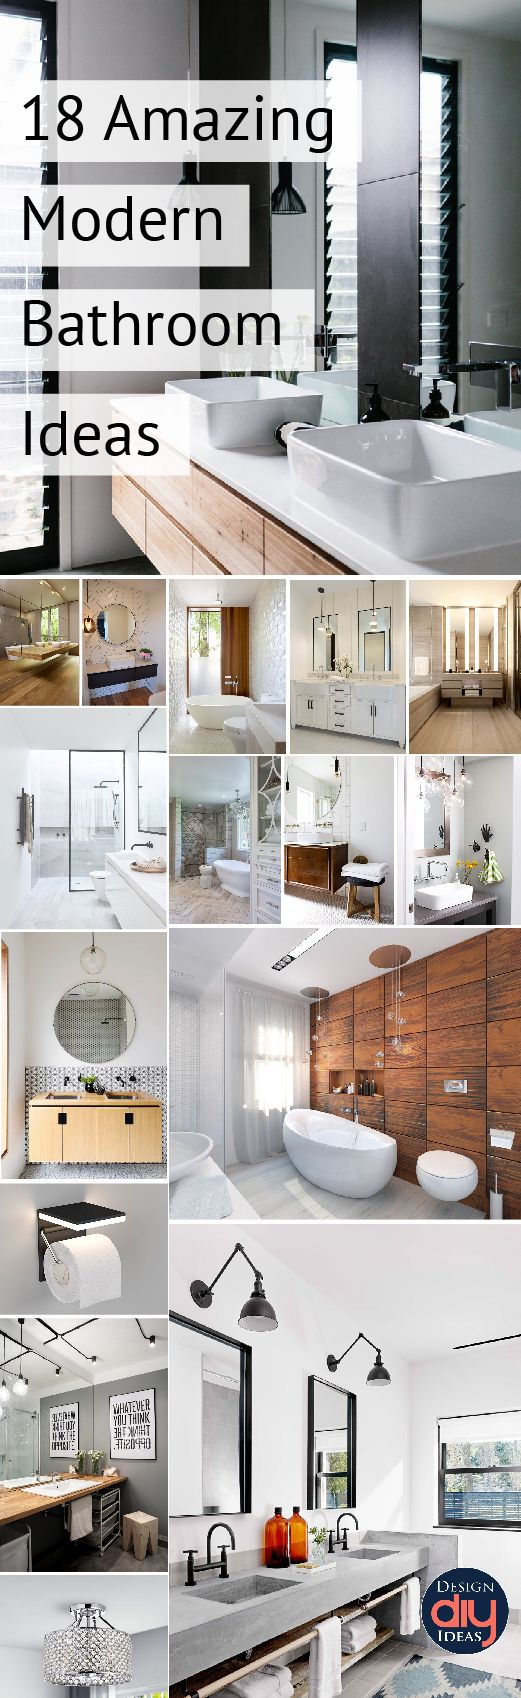 Need Modern bathroom decor ideas?  Look no further!  18 Amazing Modern bathroom ideas just for you.